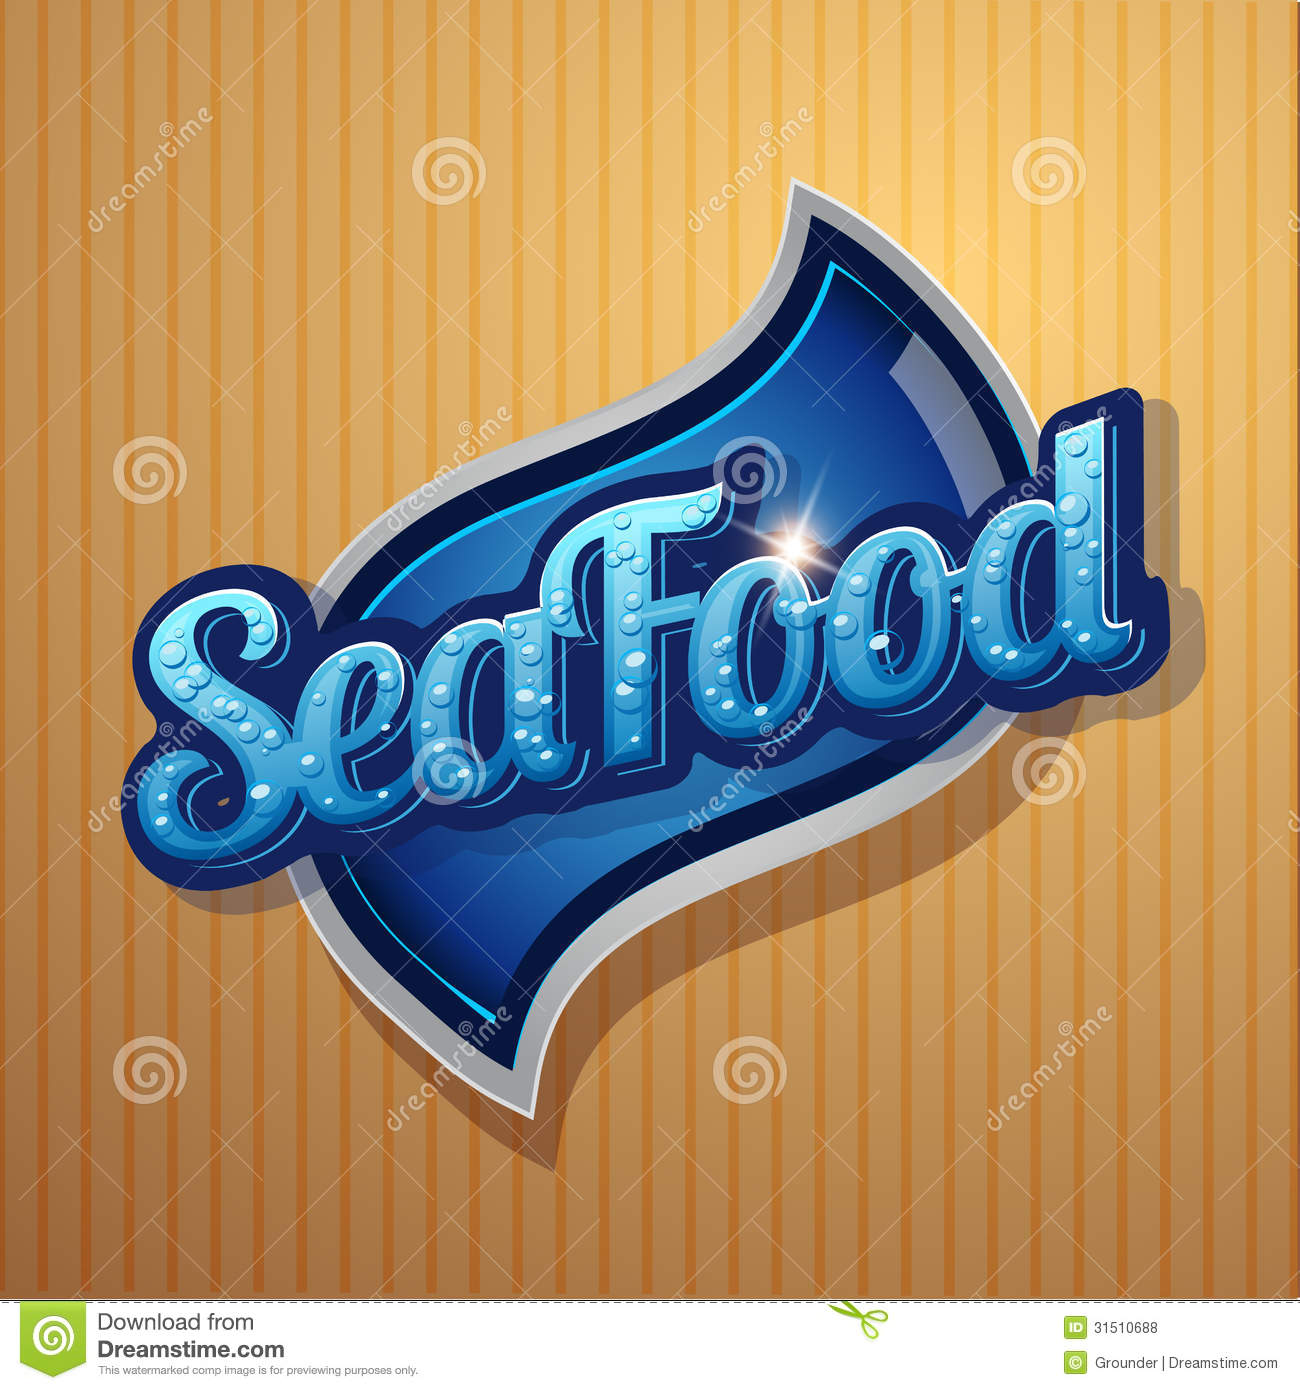 Vector Sea Food Label With Fork And Knife: Vintage Poster For Seafood Restaurant. Stock Vector